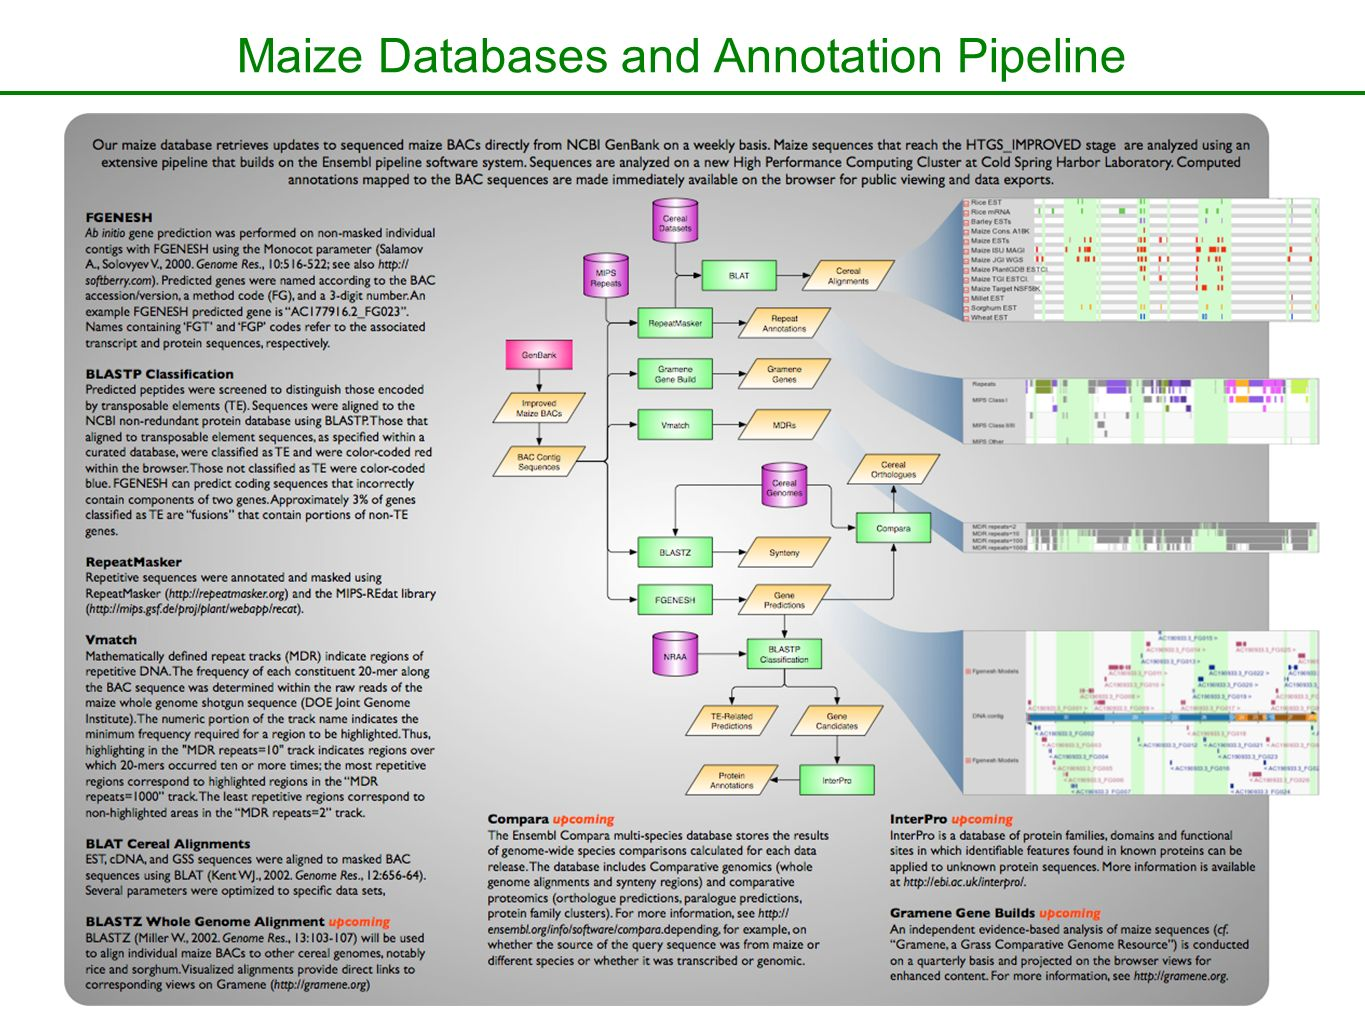 Maize Databases and Annotation Pipeline